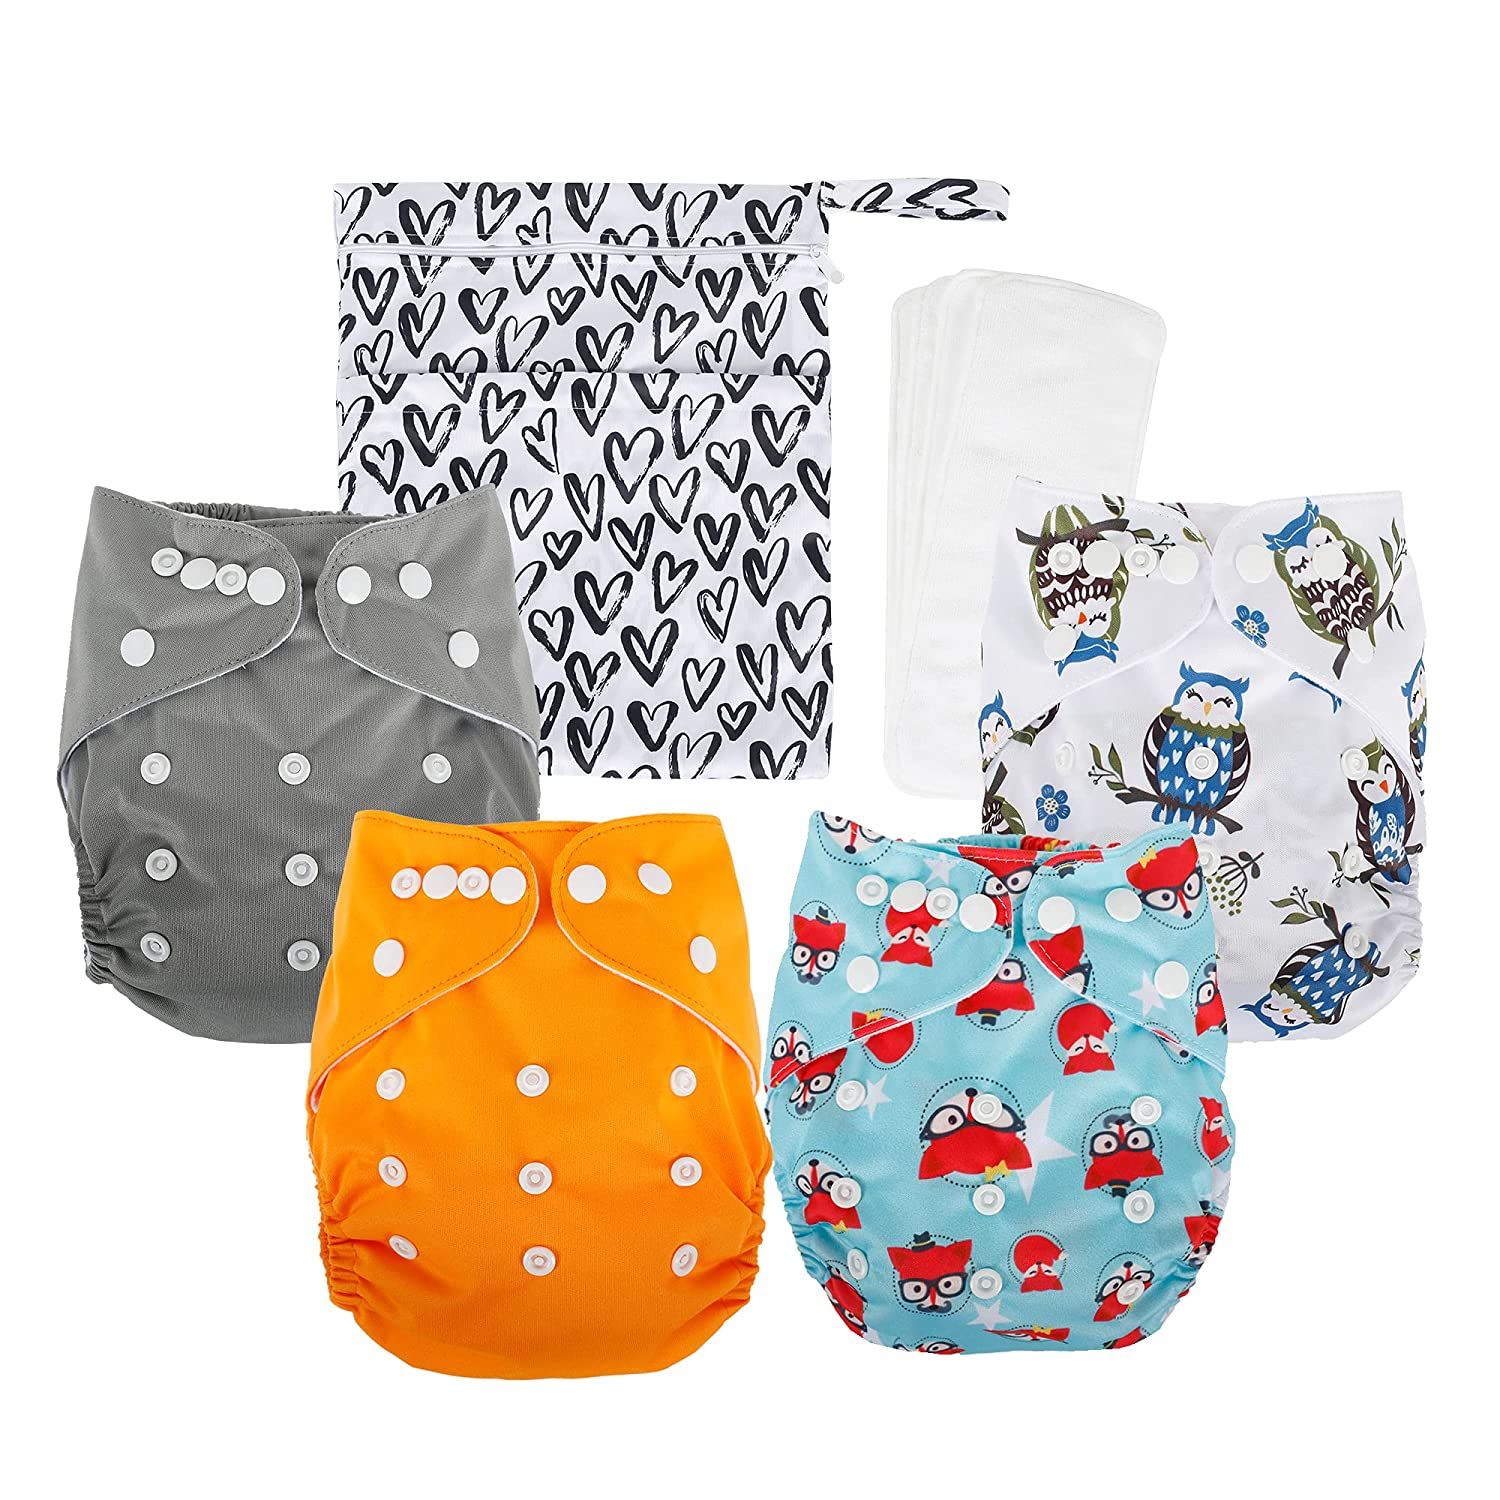 Max 81% OFF Newborn Cloth Very popular Diaper Reusable Adjustable Size Washable One Baby